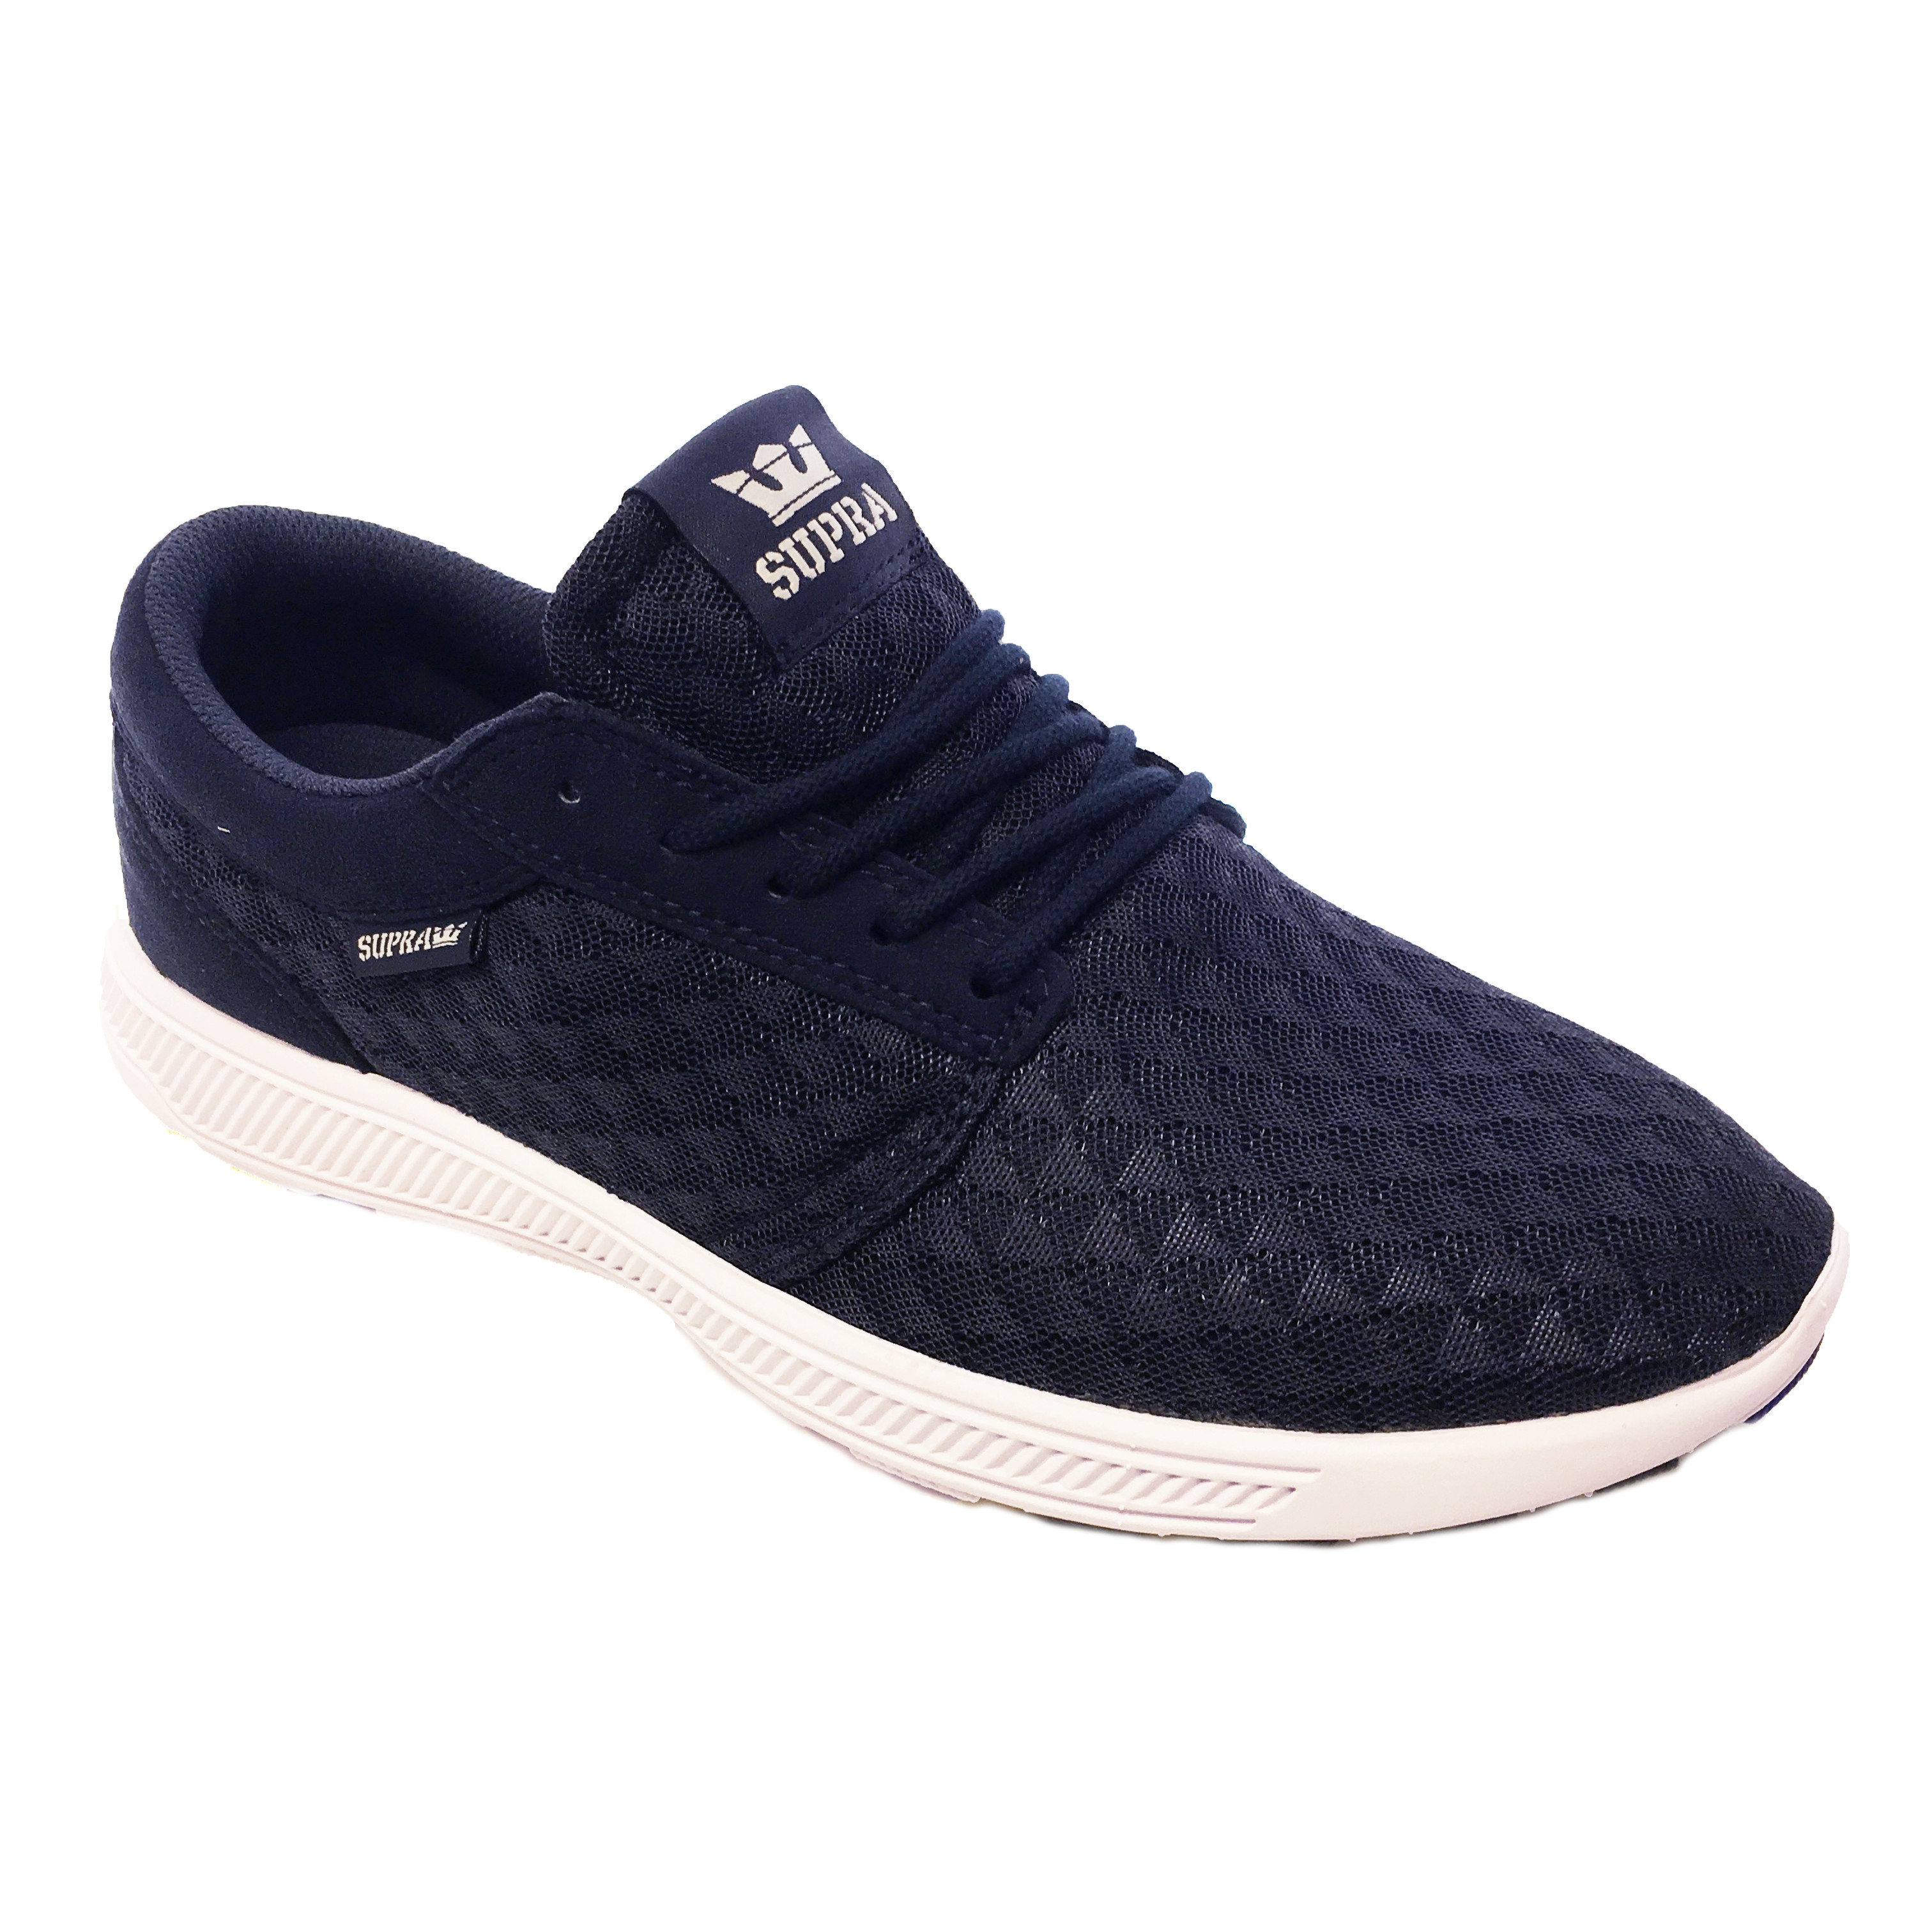 a3a71ec4b22b SUPRA Men s Hammer Run Canvas Shoes Trainers Navy Lt Grey-White ...